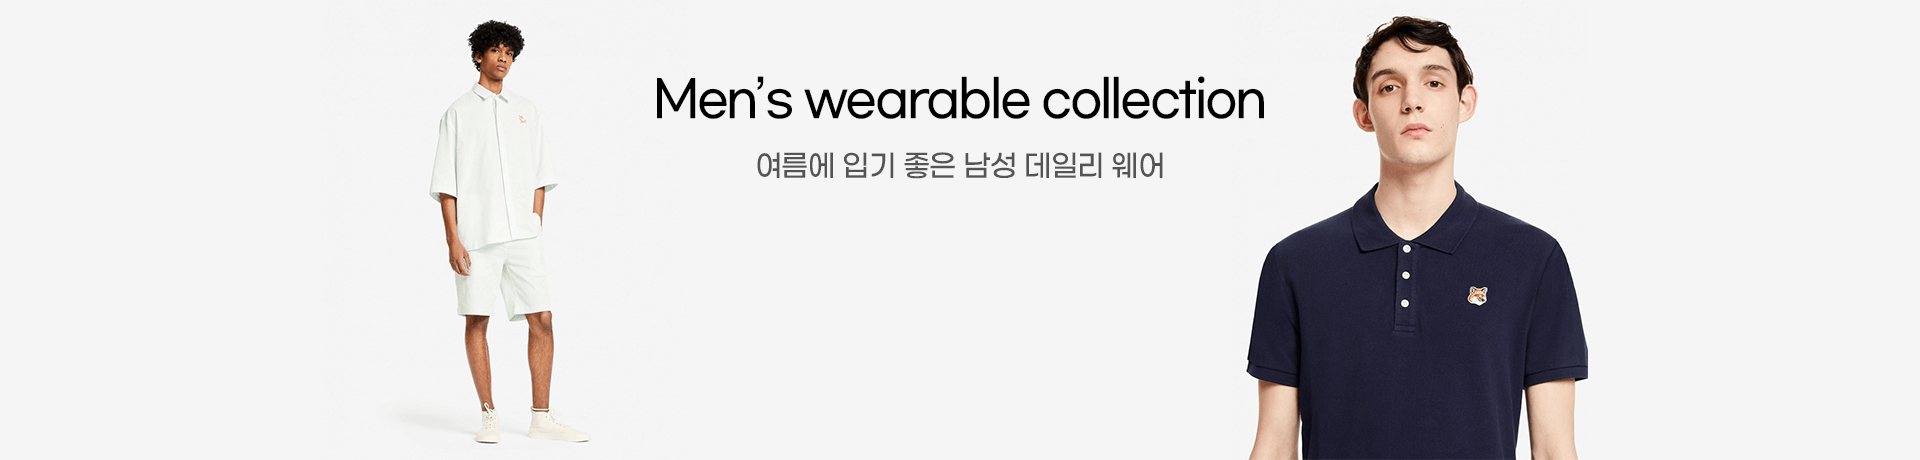 210719_sk_men_s-wearable-collection_pc_f5f5f5